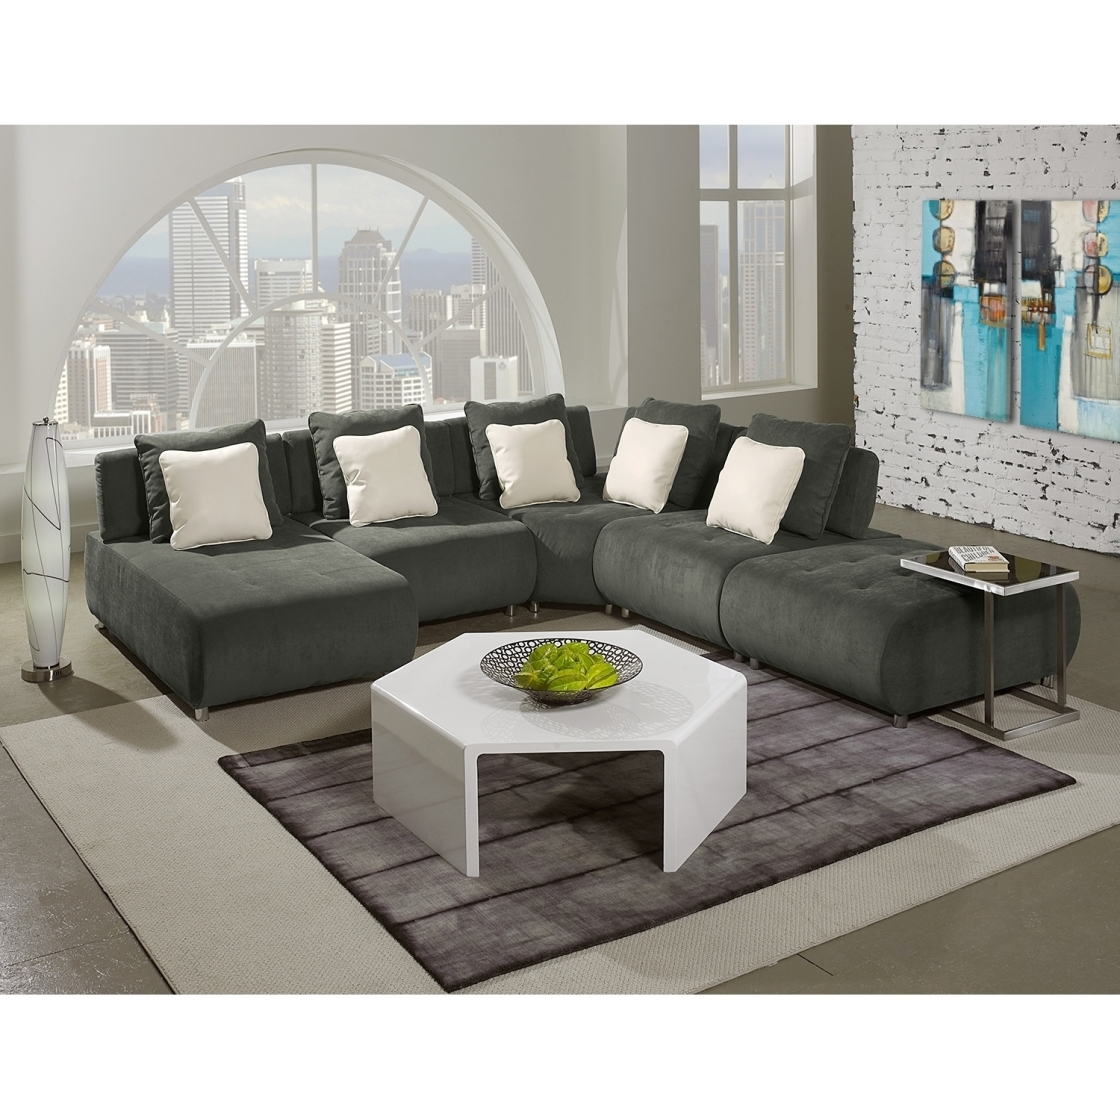 Latest Trend Of Small U Shaped Sectional Sofa 66 For Sectional Sofa Pertaining To Small U Shaped Sectional Sofas (View 5 of 15)